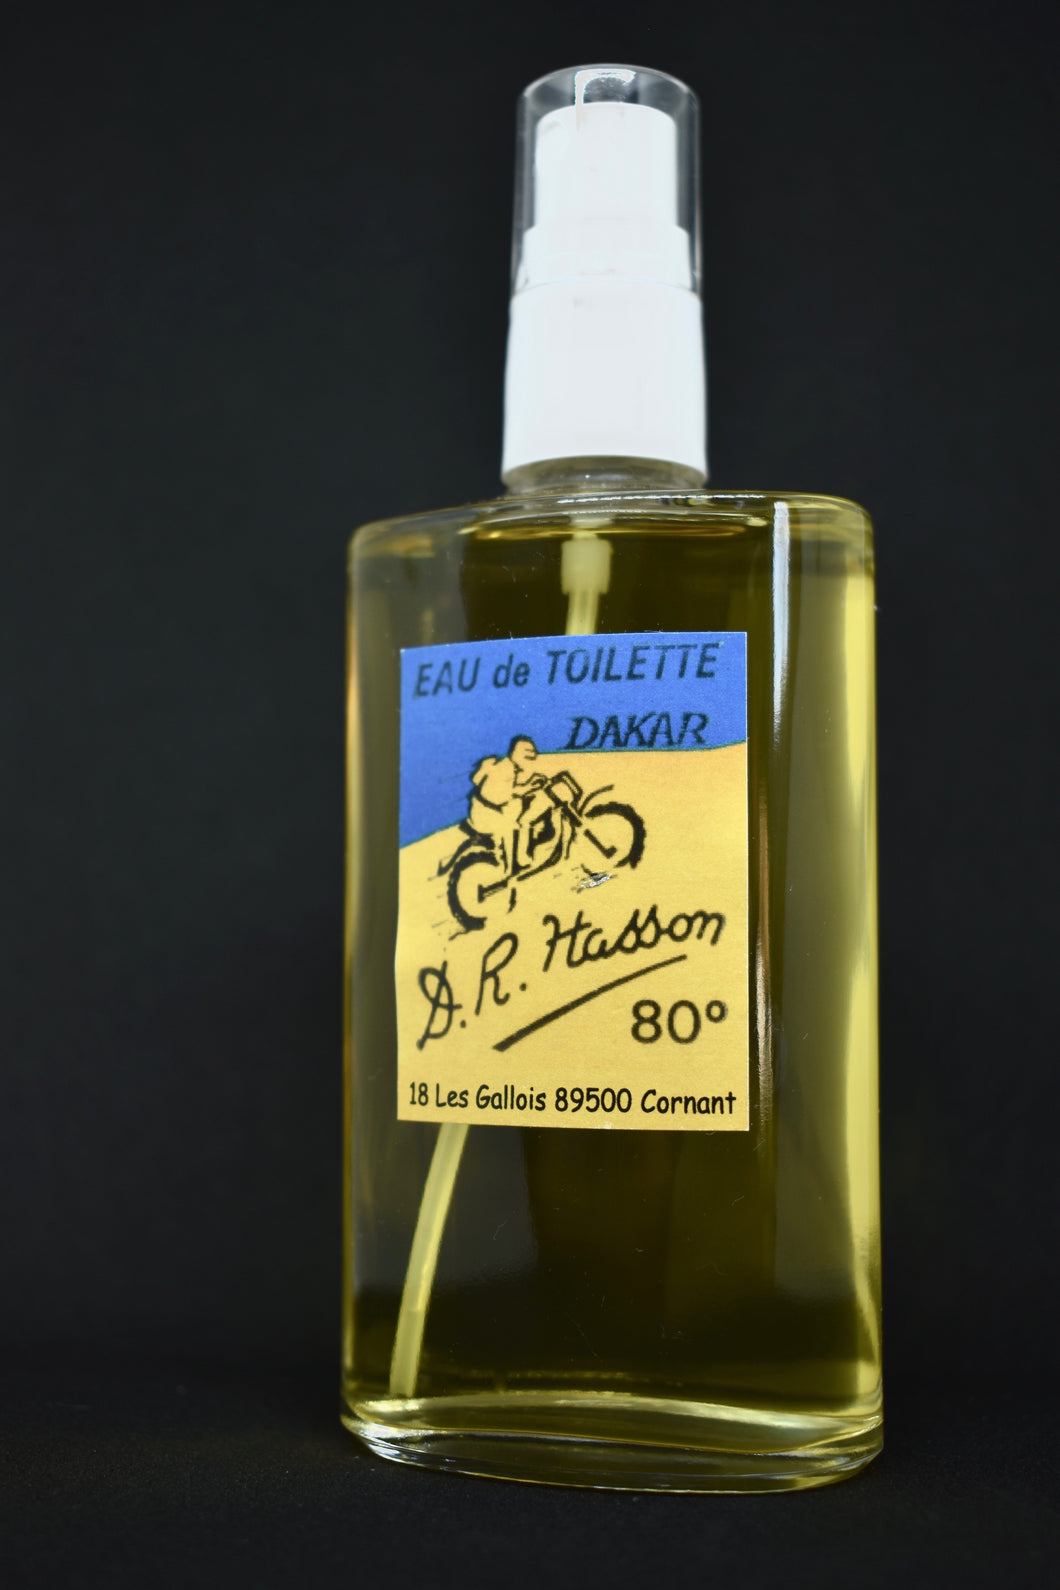 D. R. Hasson - Dakar - Eau de Toilette 80% 100ml